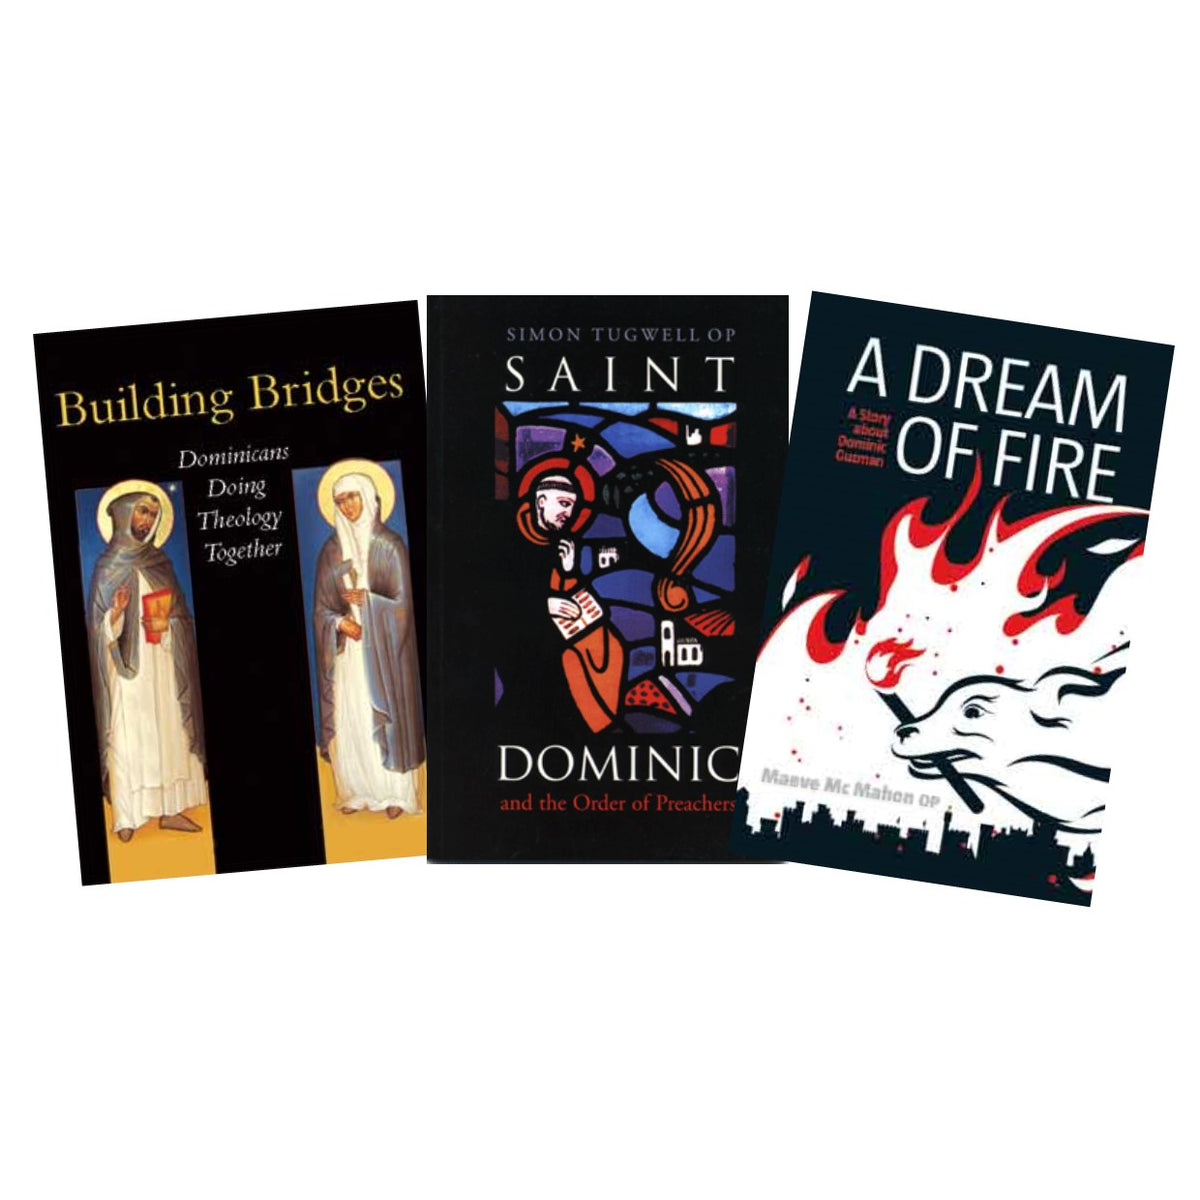 Books on the Domincan Order and Saint Dominic.